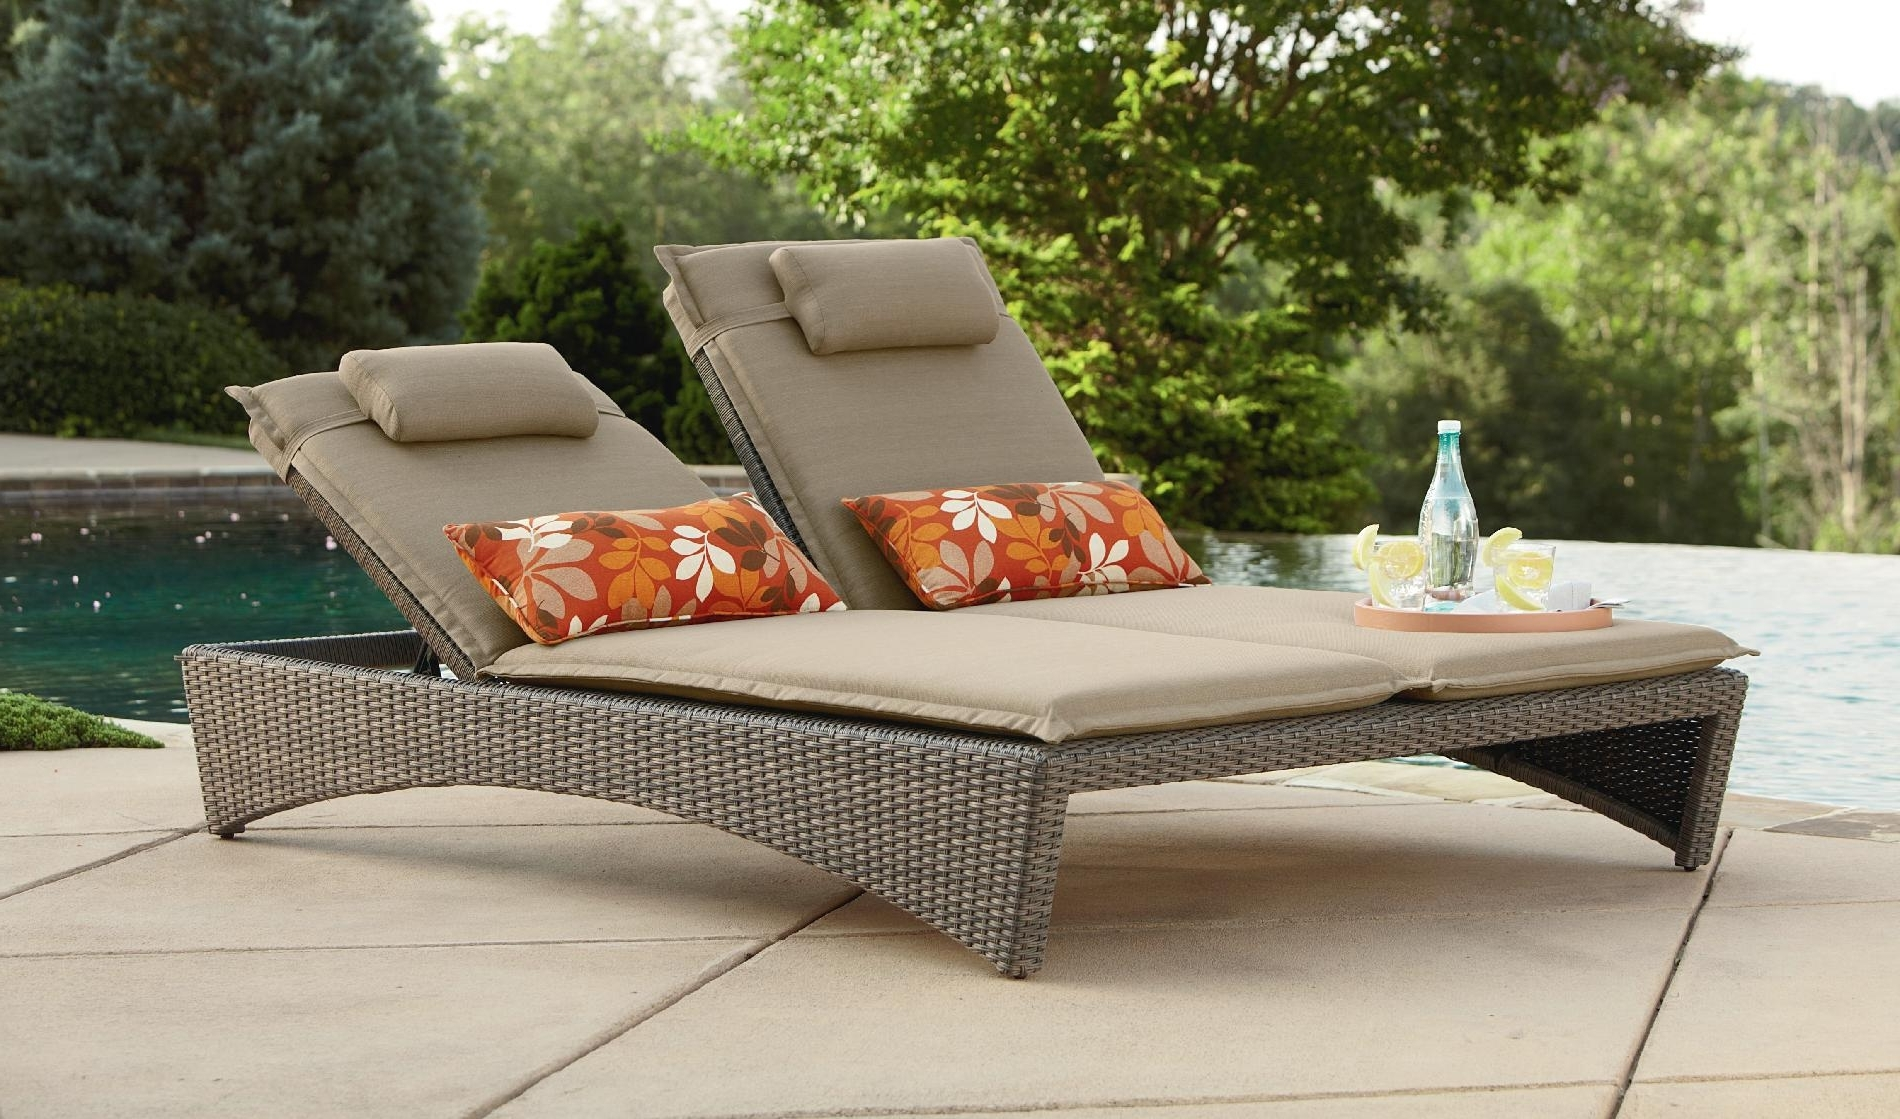 Chaise Lounge Lawn Chairs Pertaining To Most Up To Date Best Pool Chaise Lounge Chairs — Bed And Shower : Decorating Pool (View 9 of 15)